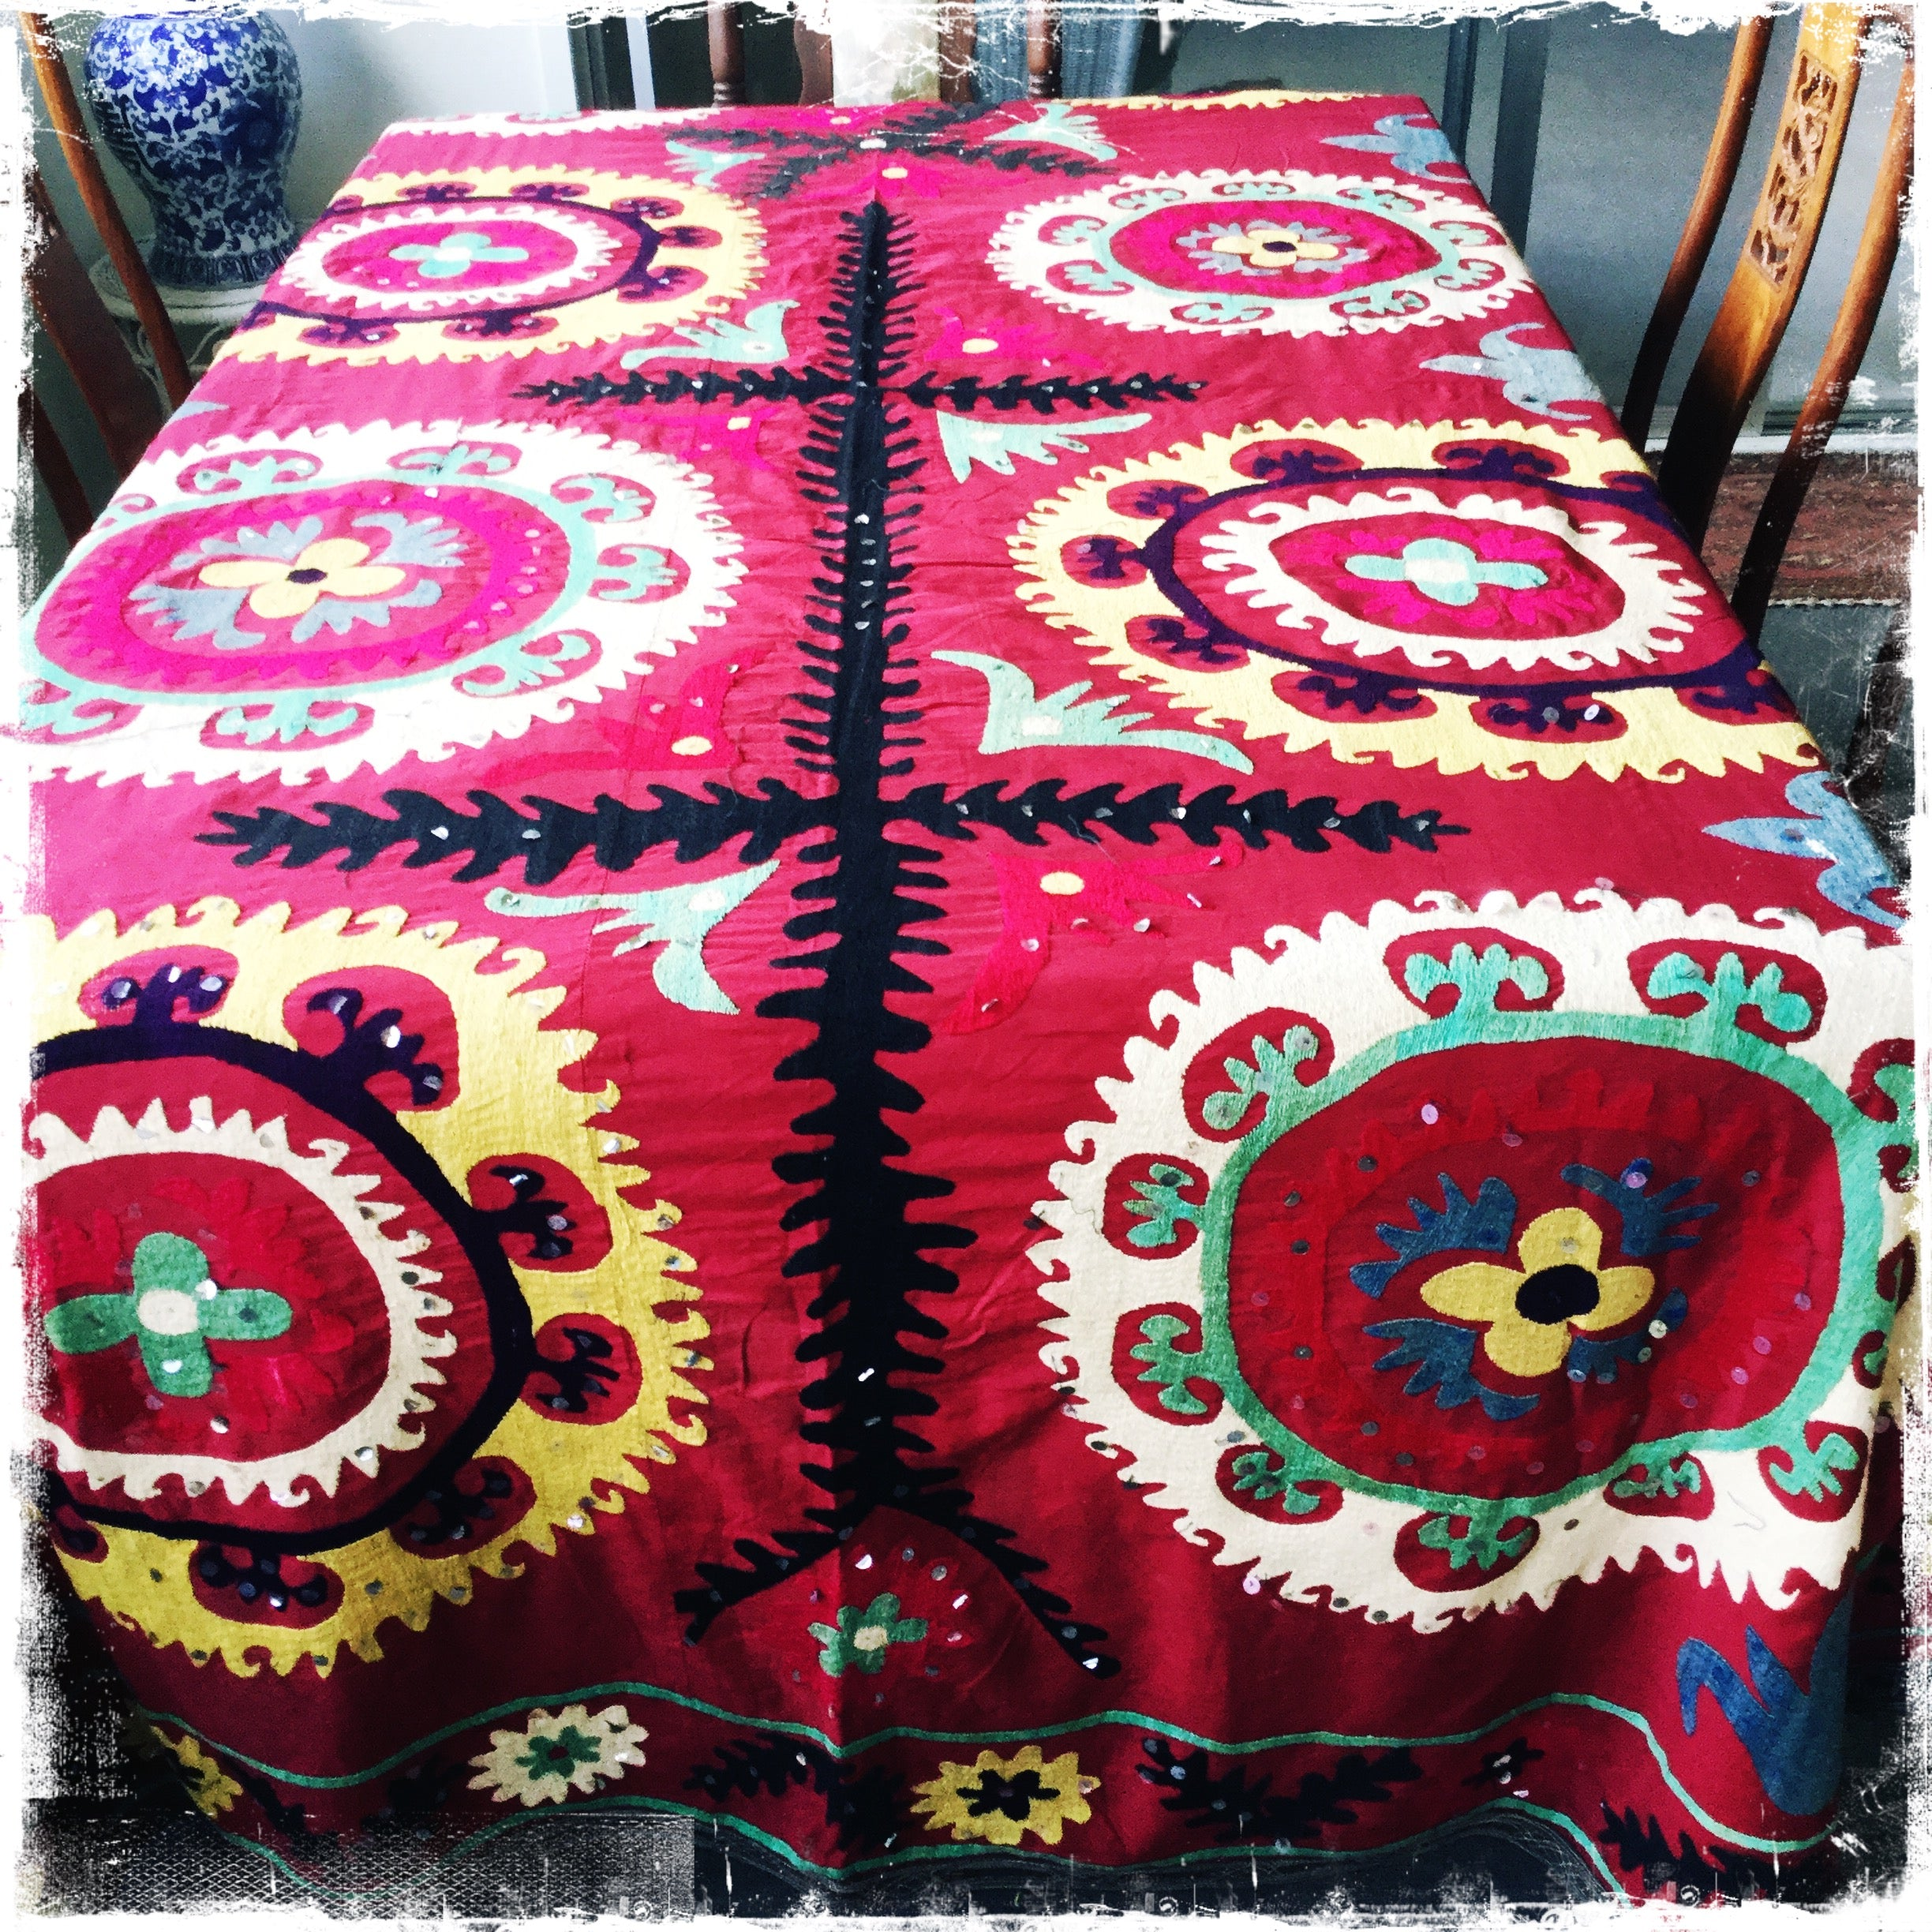 Suzani Vintage Hand-Embroidered Ethnic Tapestries and Throws - Honorooroo Lifestyle